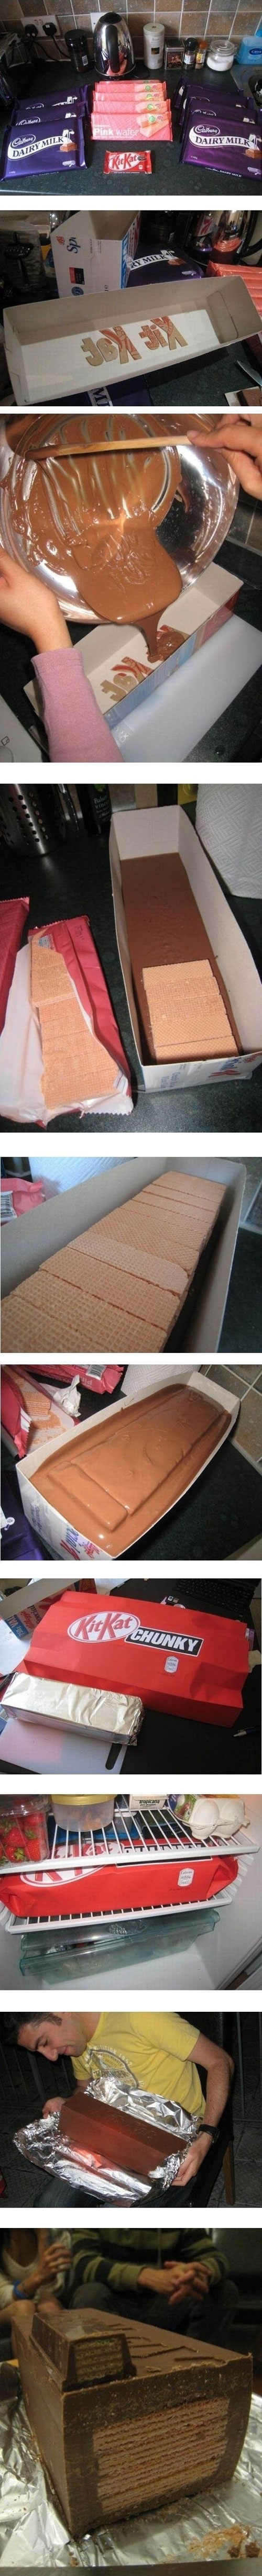 HOW TO MAKE: GIANT KIT KAT BAR ….. *gasp*  This is awesome!!  Want to make for